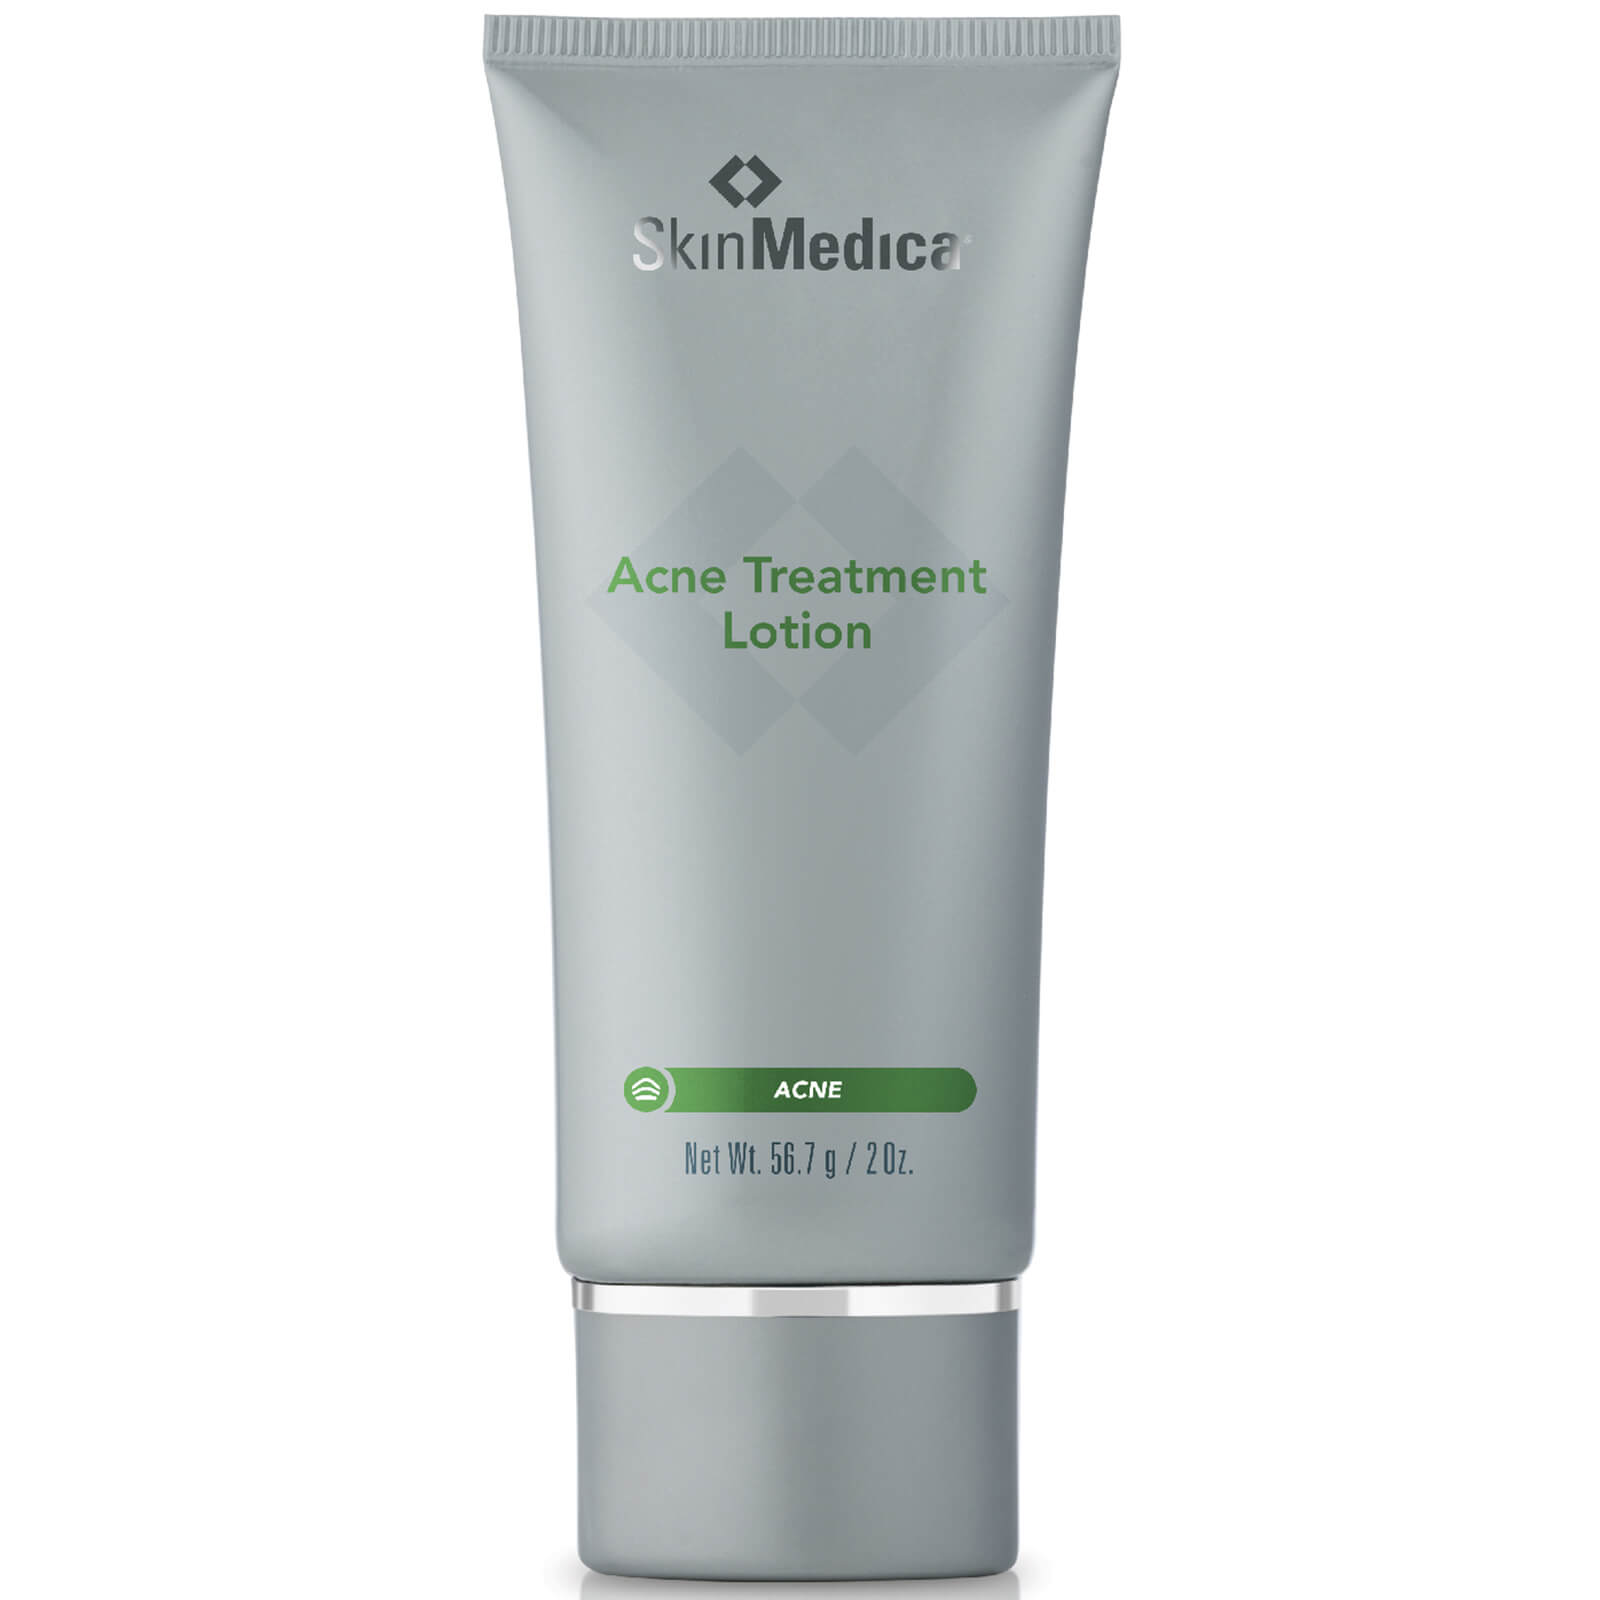 SkinMedica Acne Treatment Lotion (2oz)